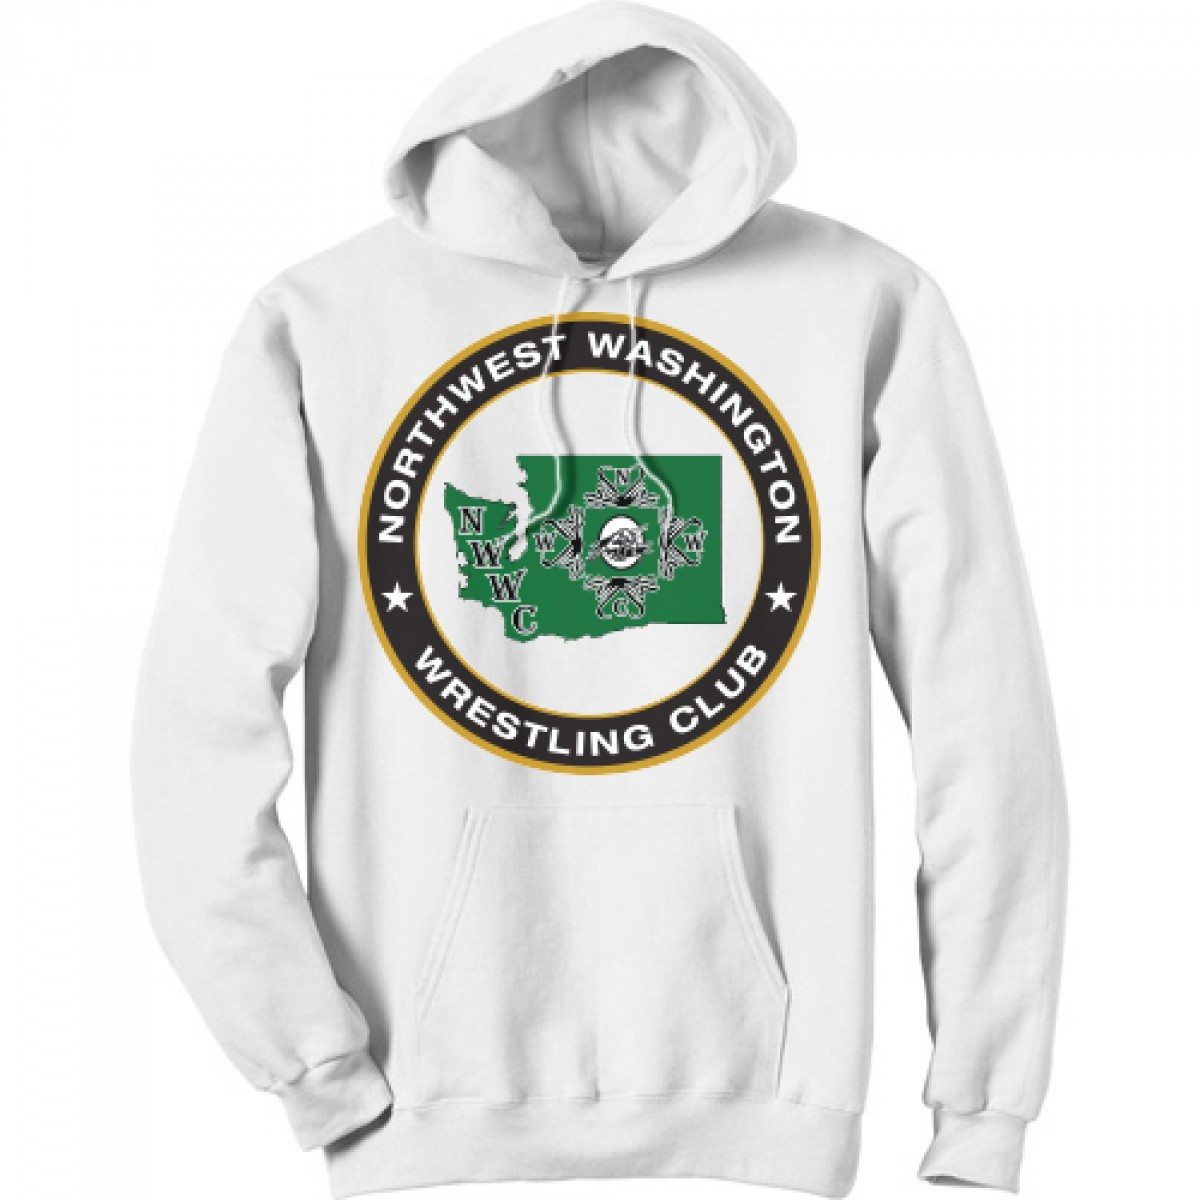 NWWC White Hoodie With Green Logo-White-XL